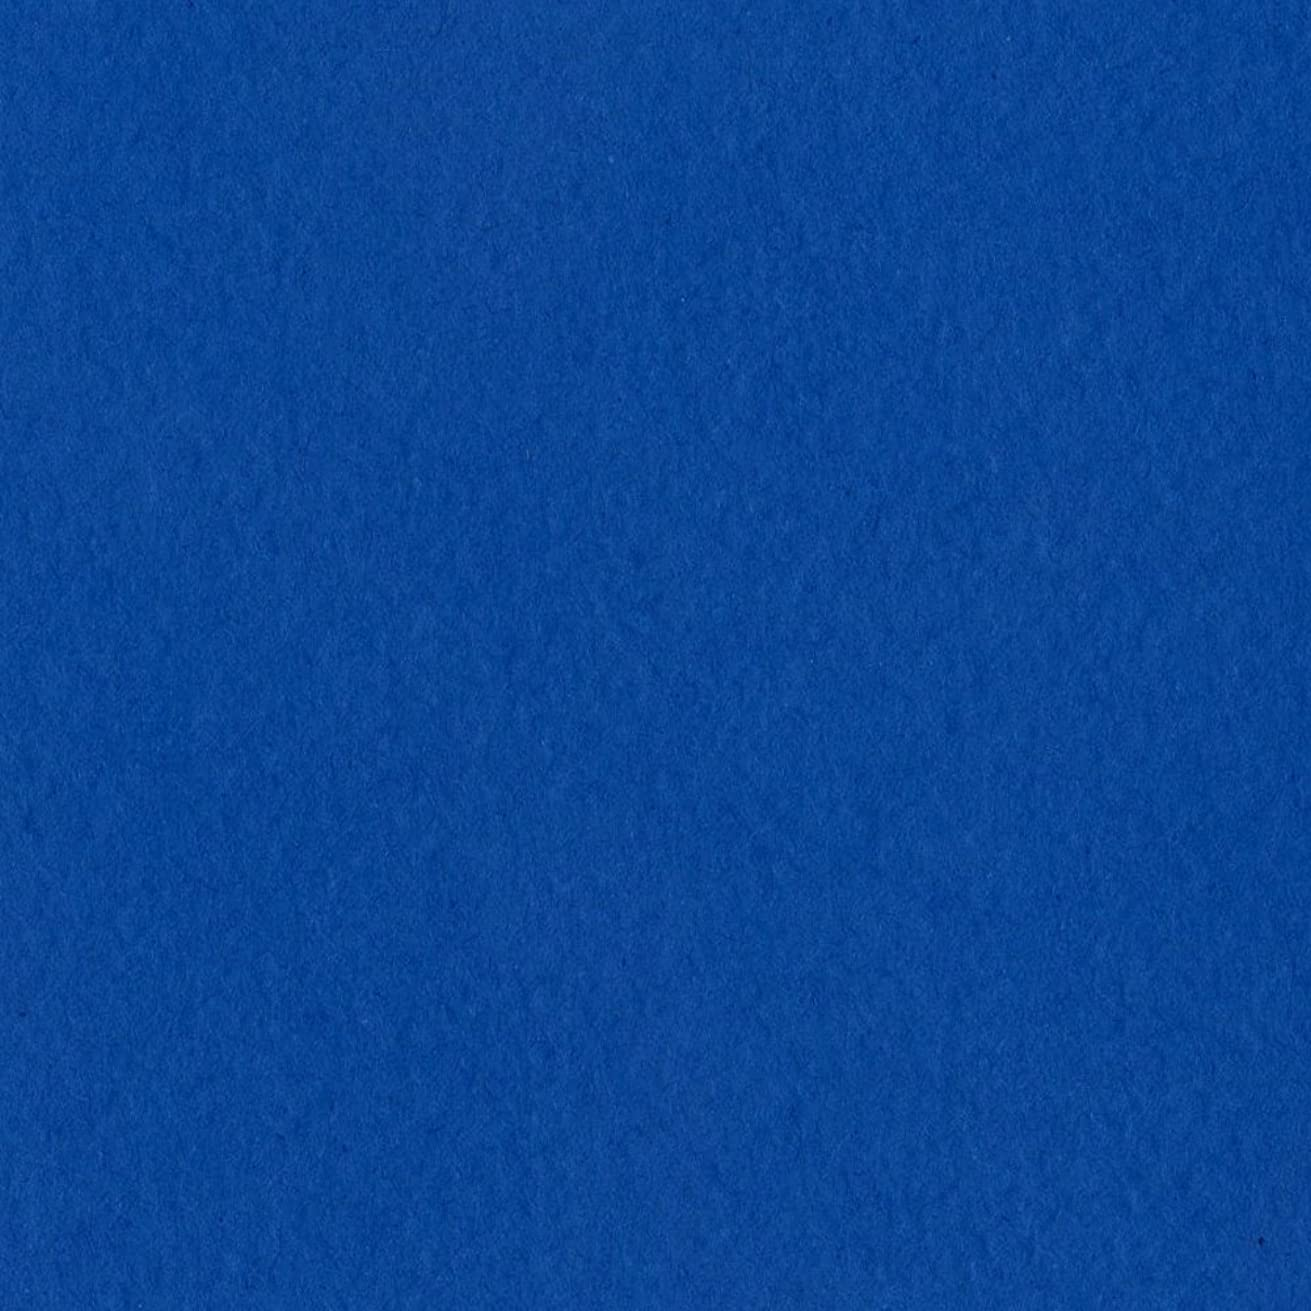 Bazzill Basics 19-7044 Prismatic Cardstock, Classic Blue, 25 Sheet Pack, 8.5 x 11 Inches